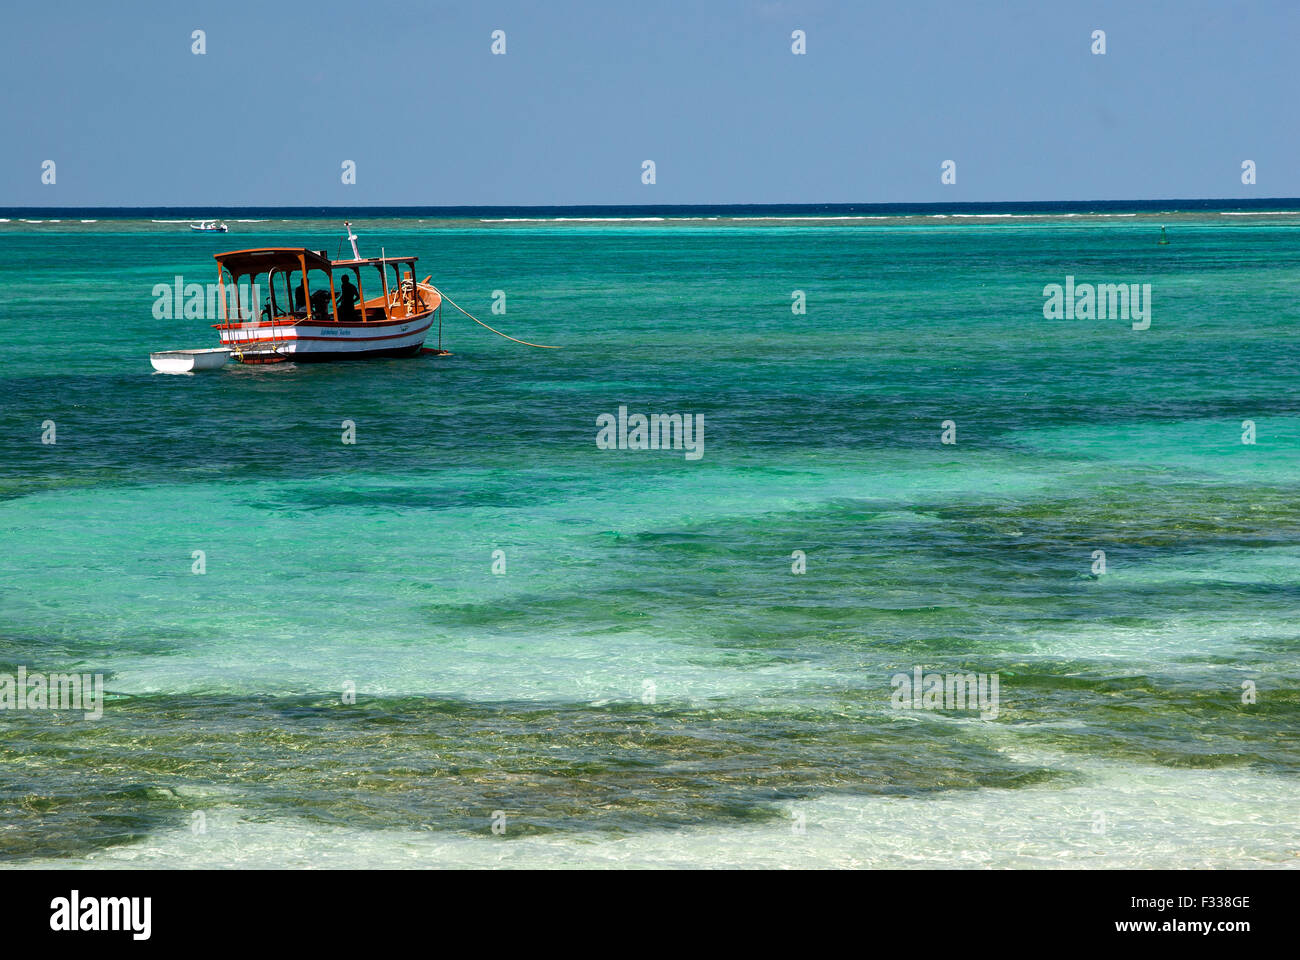 The image of Sea scape was taken in Kavaratti island, Lakshadweep, India - Stock Image